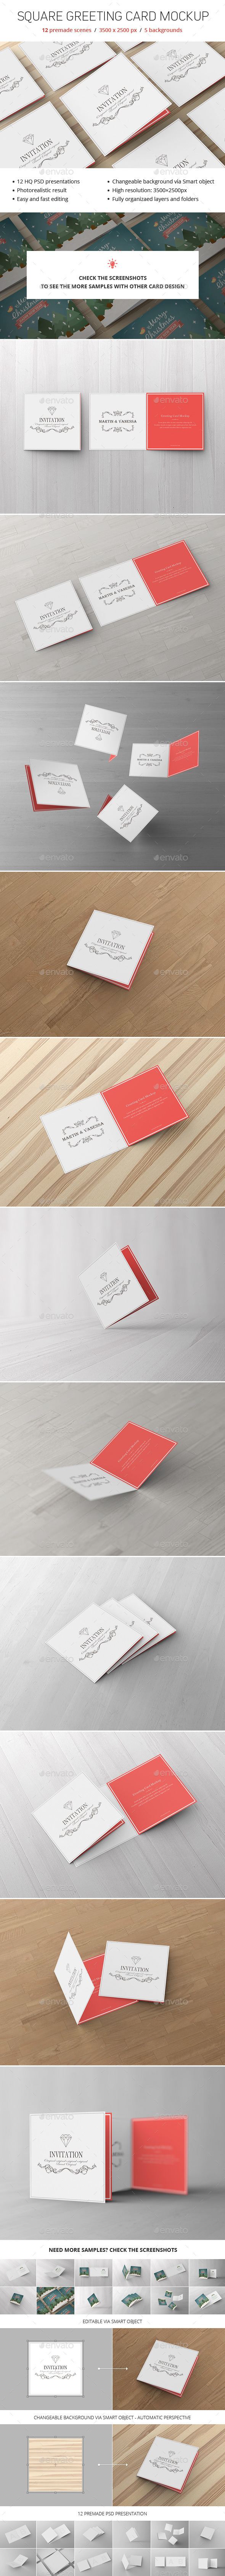 Square Greeting Card Mockup - Brochures Print